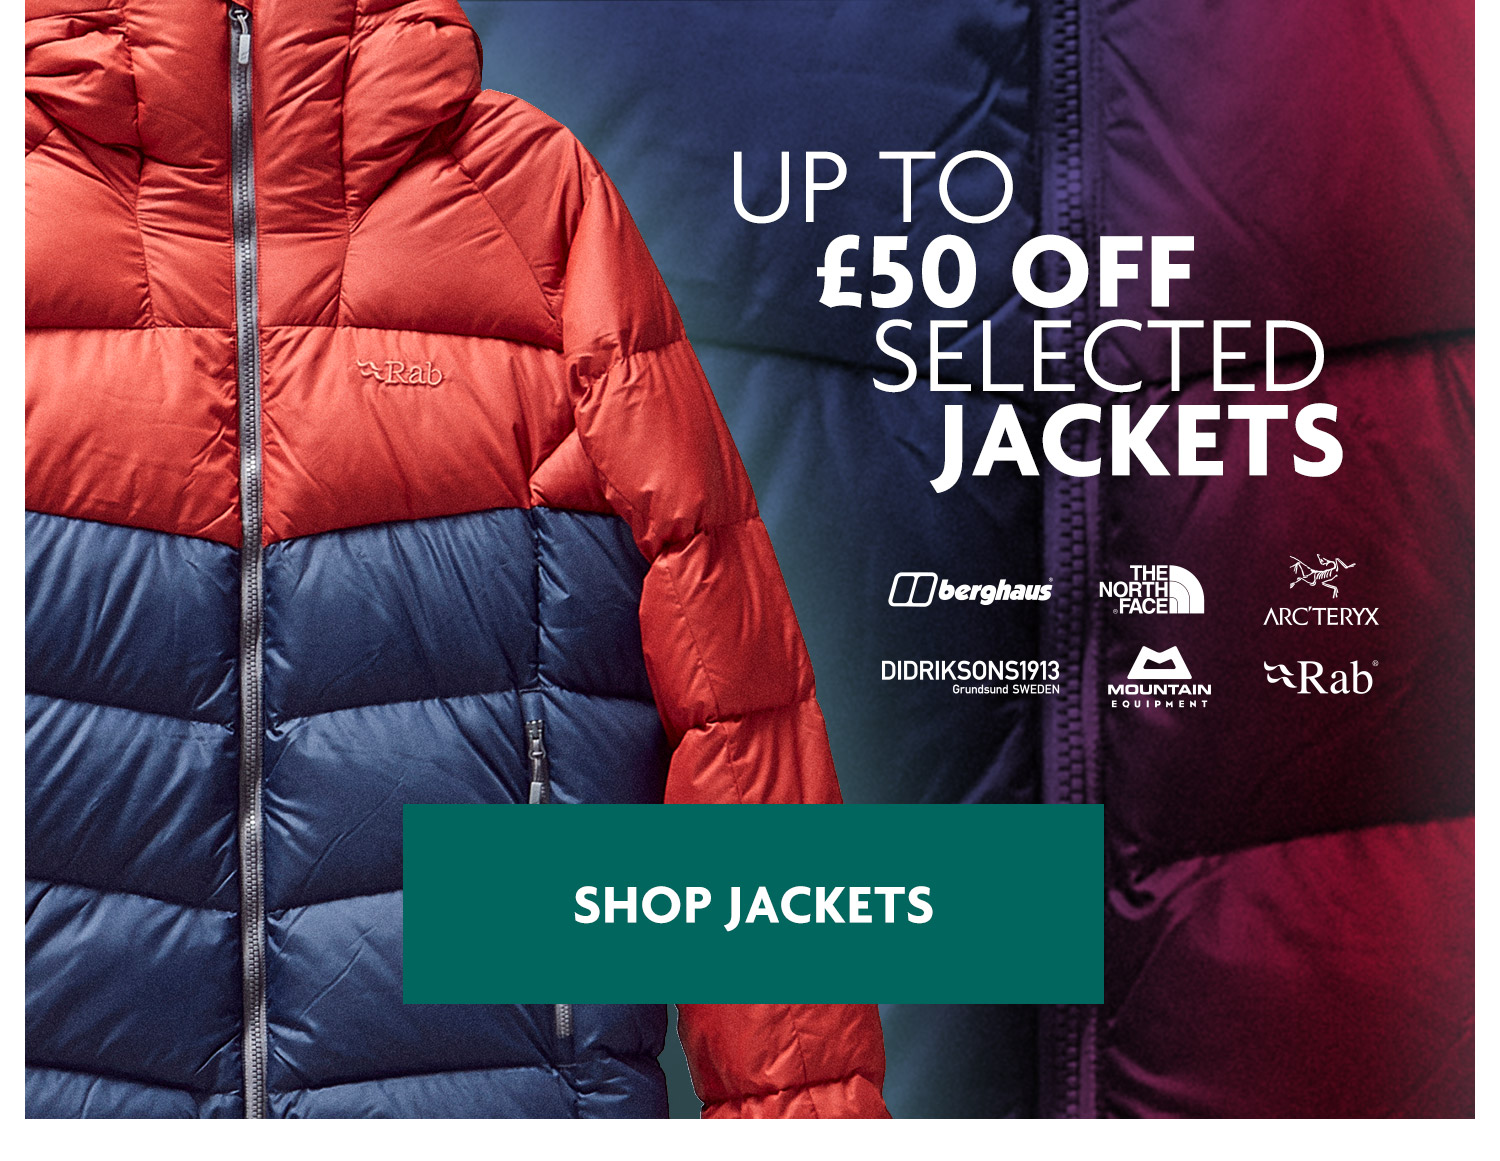 Up to £50 Off Selected Jackets